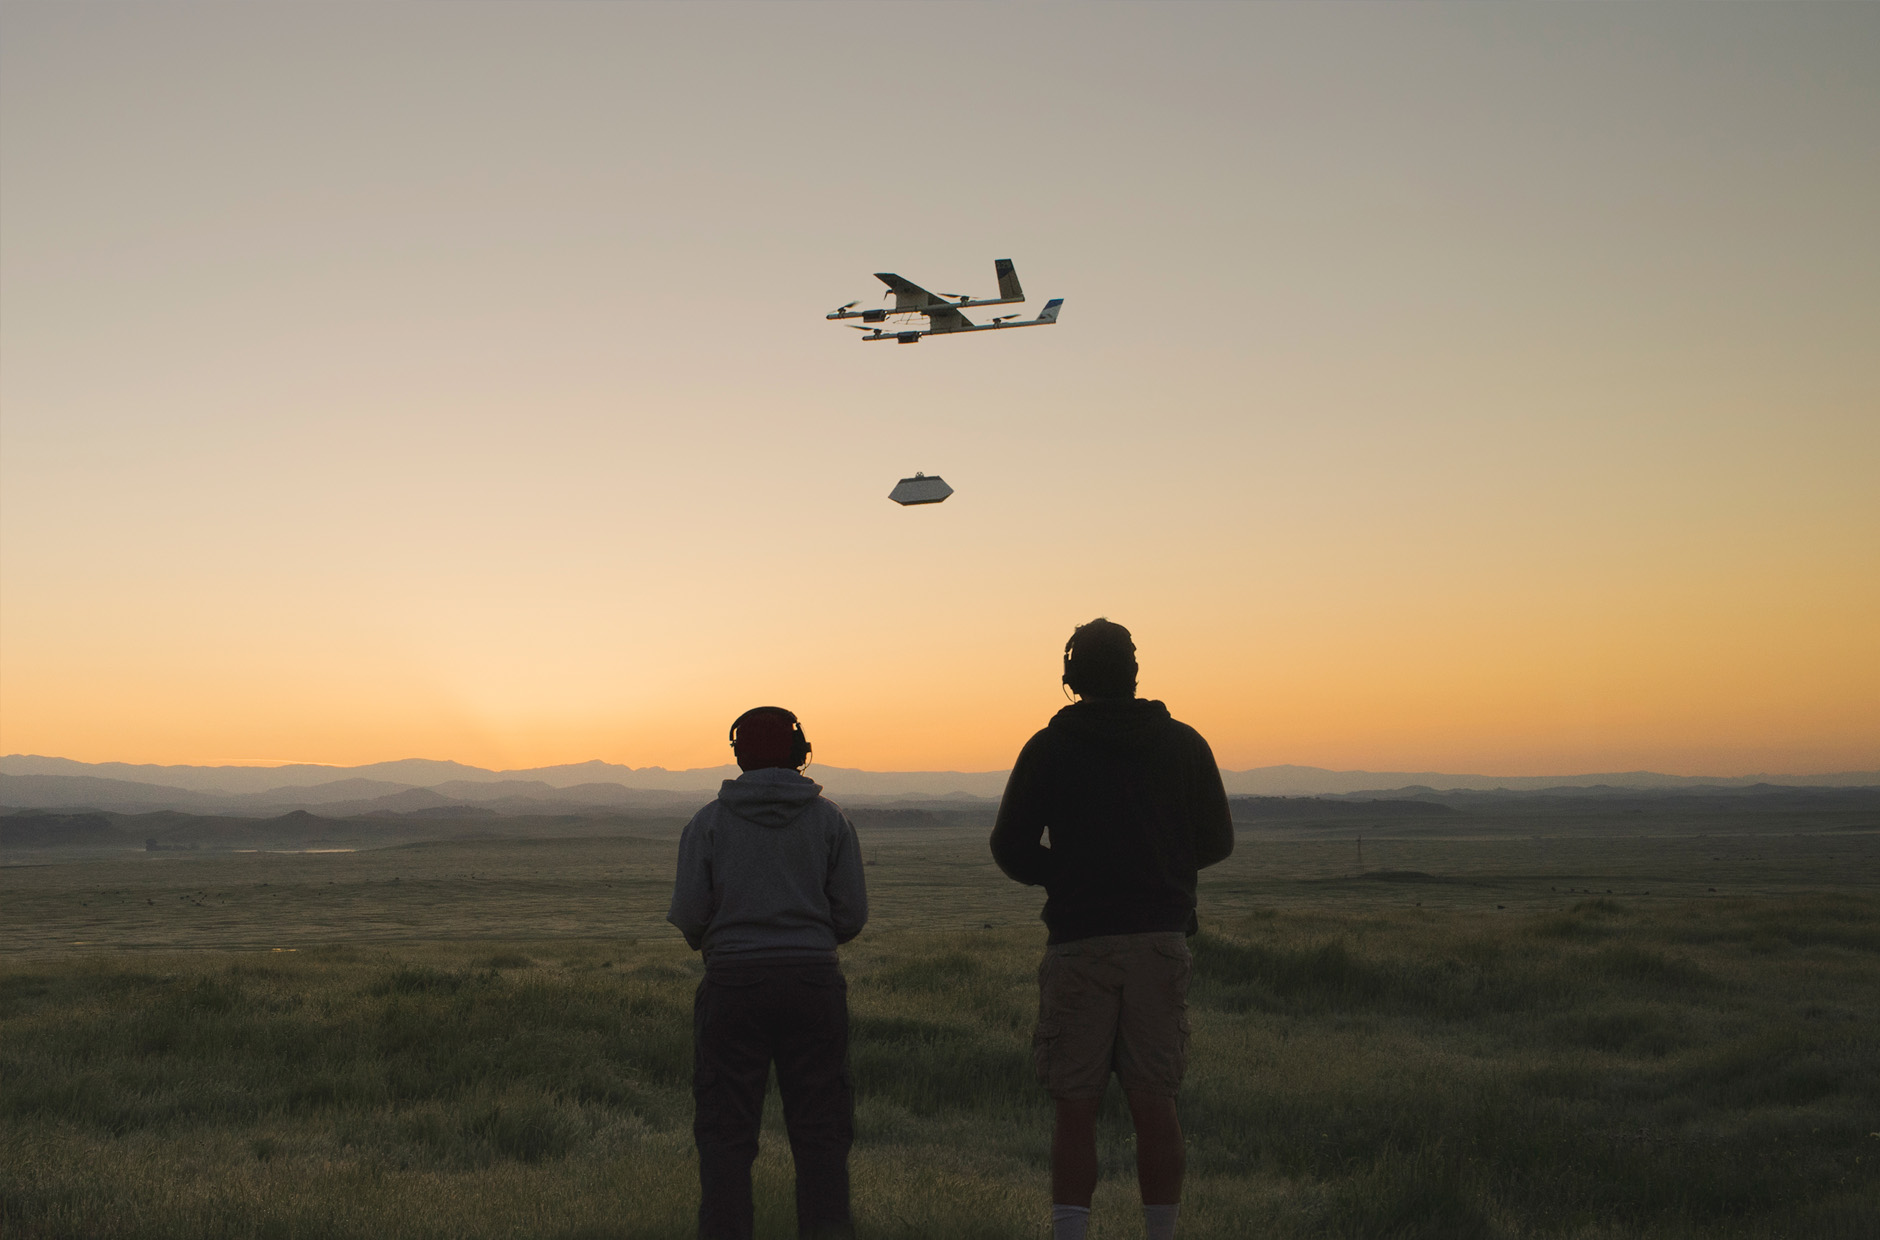 Alphabet wants Project Wing to enable product delivery by aerial drone.